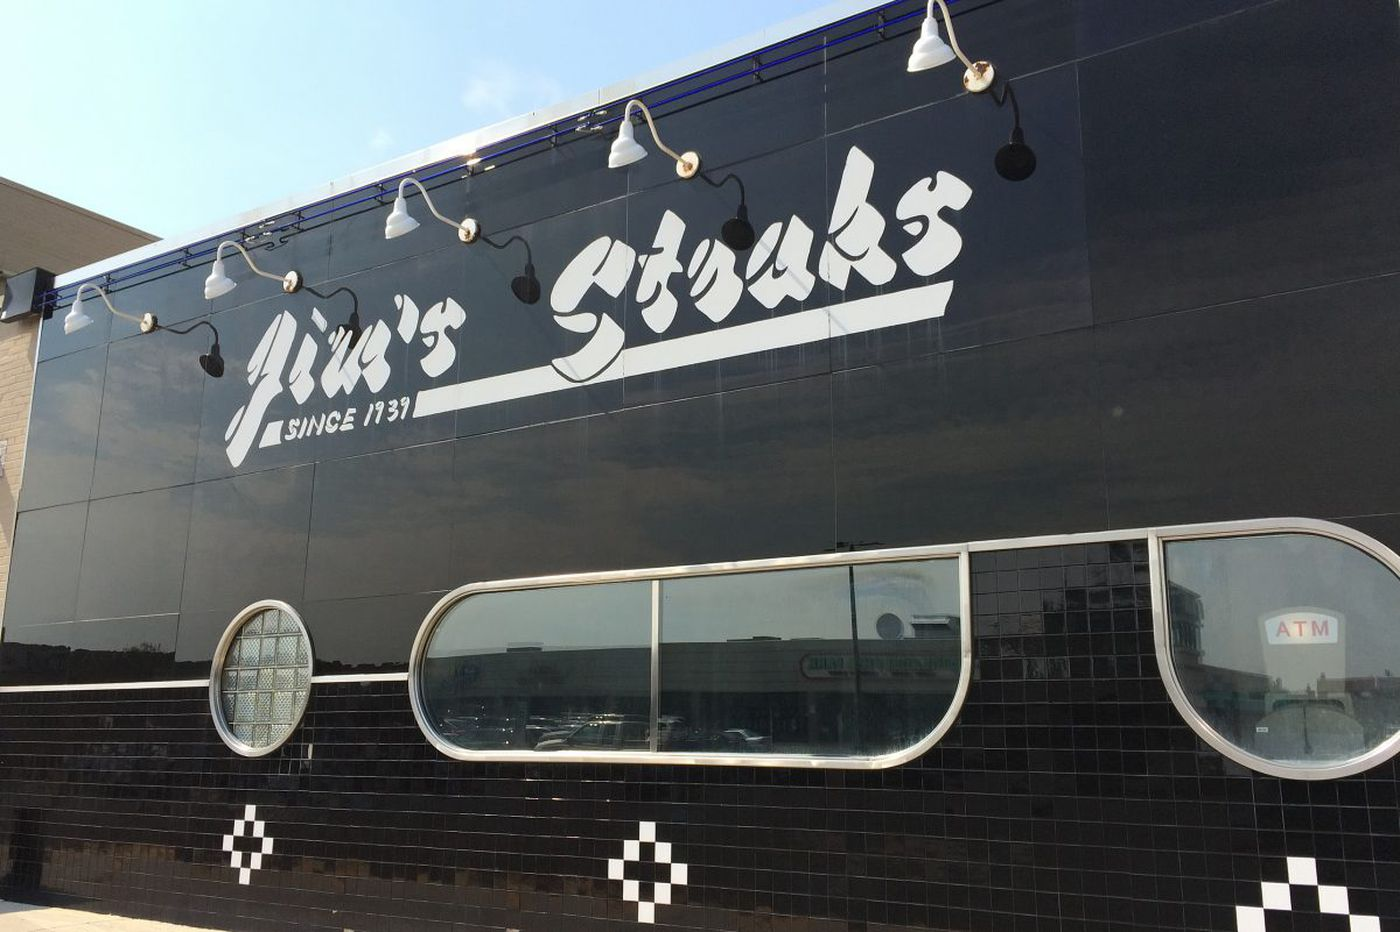 Jim's Steaks in Northeast Philly may be out of business